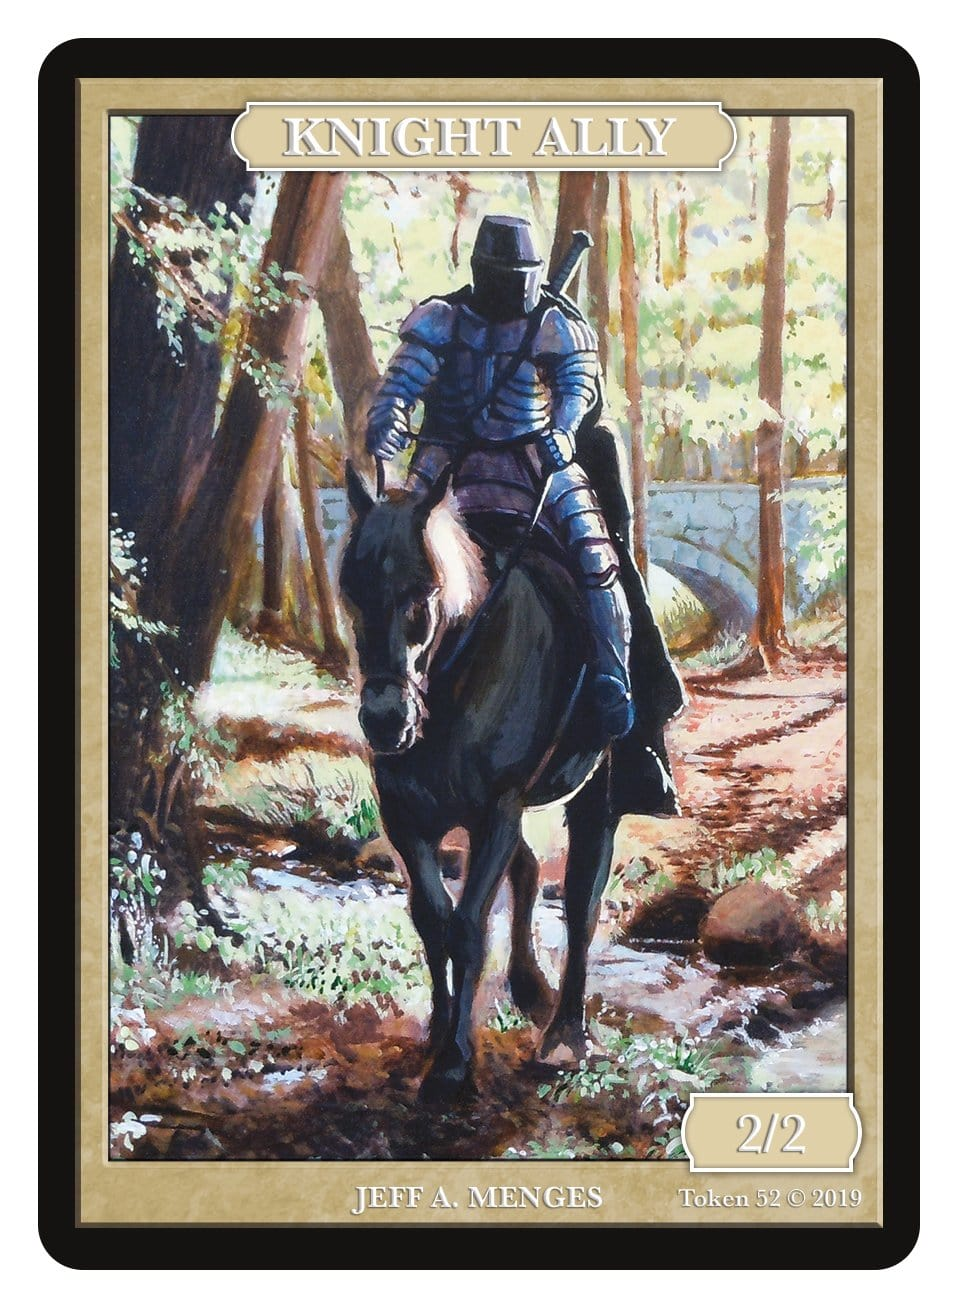 Knight Ally Token (2/2) by Jeff A. Menges - Token - Original Magic Art - Accessories for Magic the Gathering and other card games